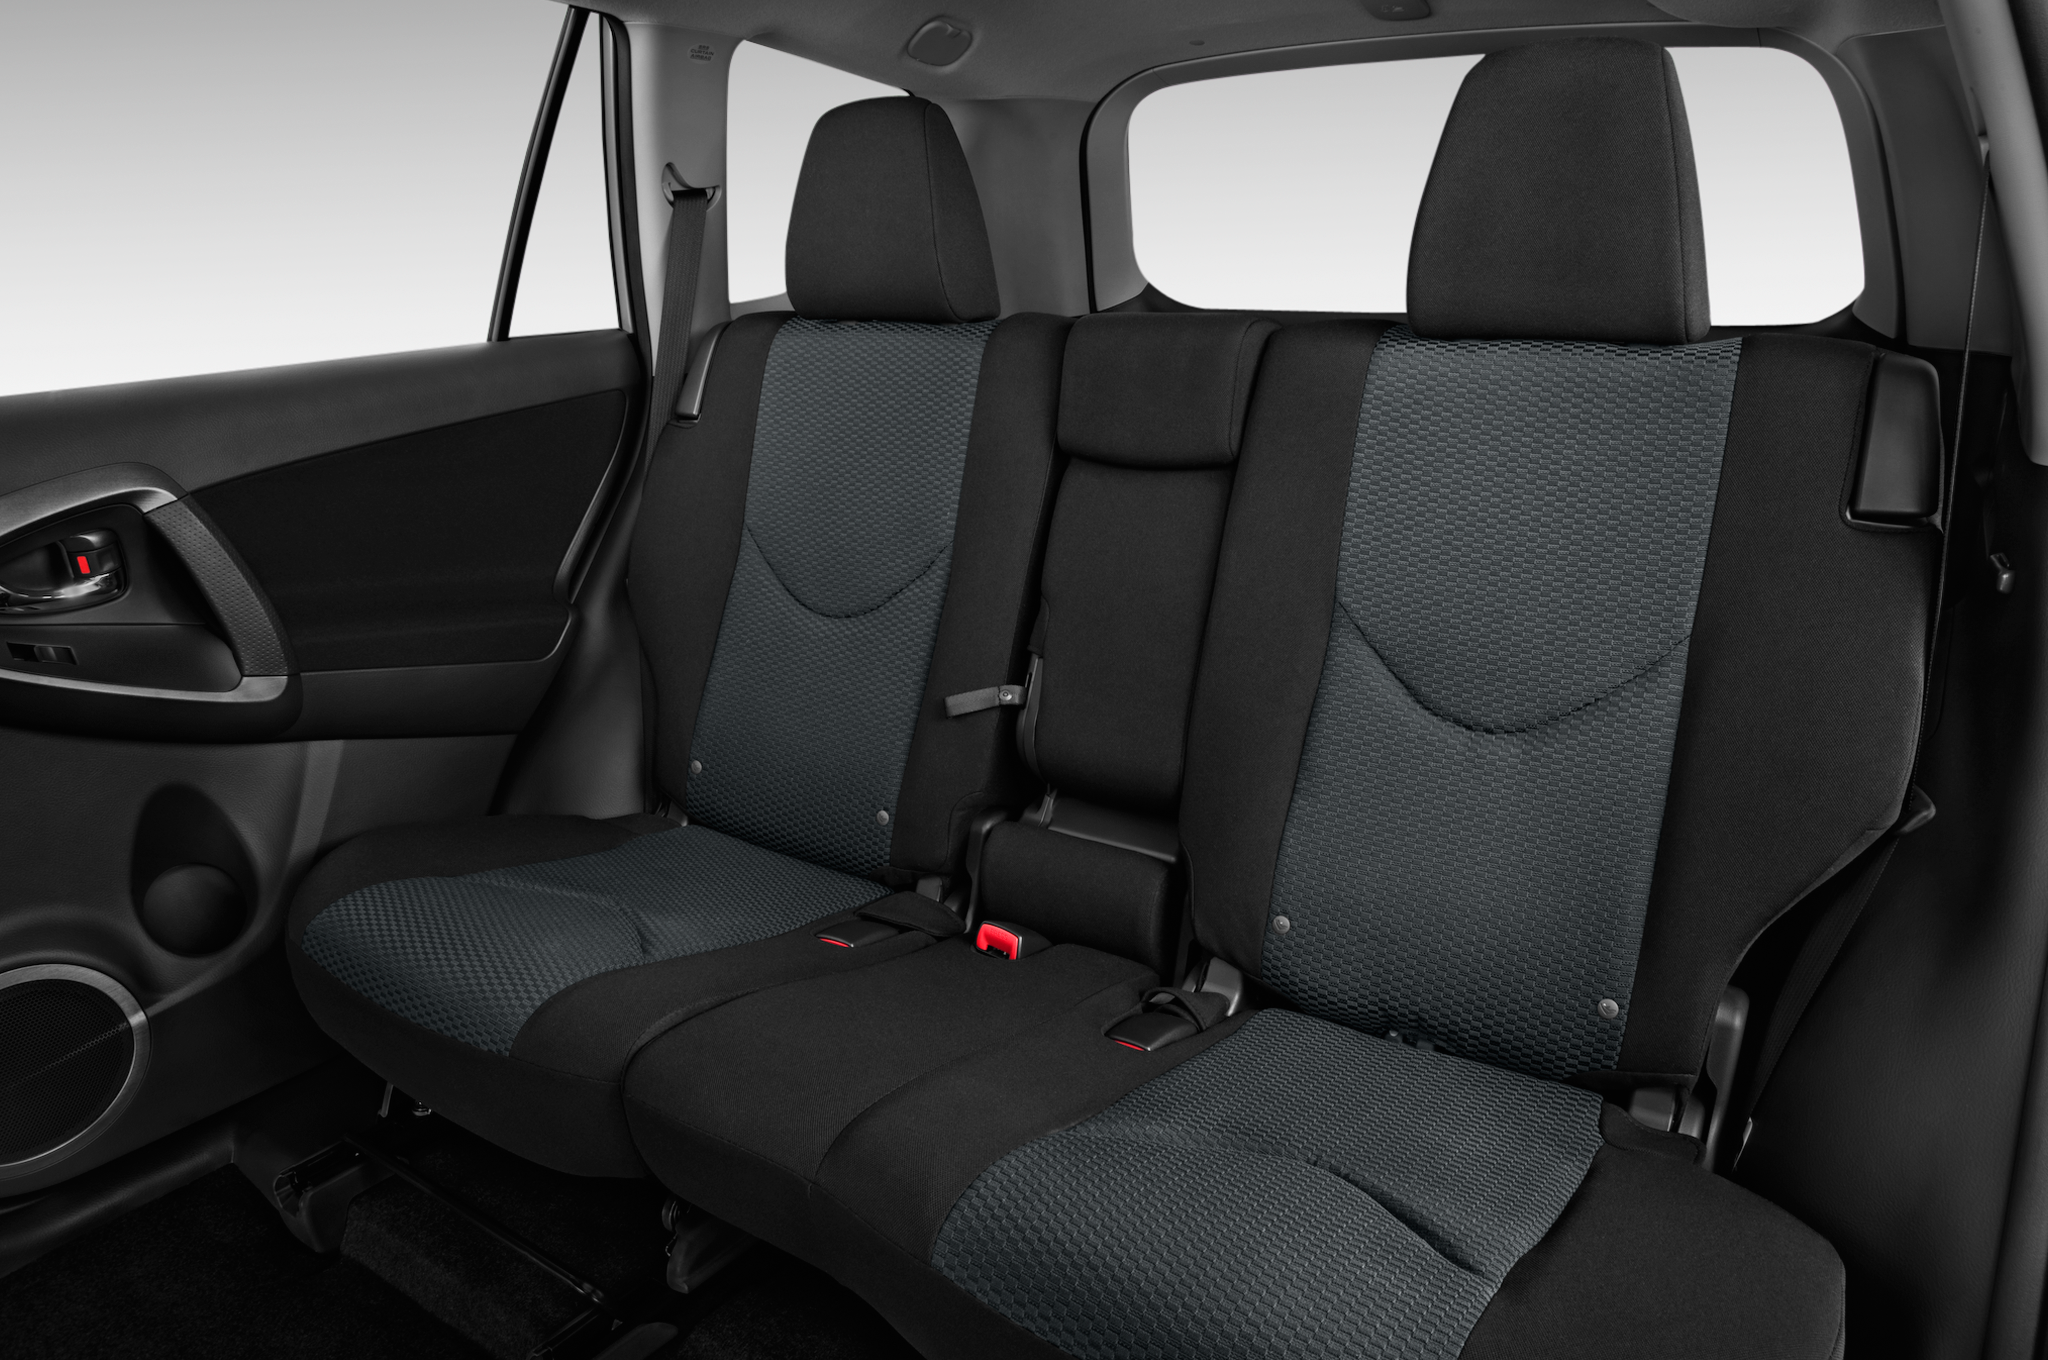 new photos may reveal the 2013 toyota rav4. Black Bedroom Furniture Sets. Home Design Ideas